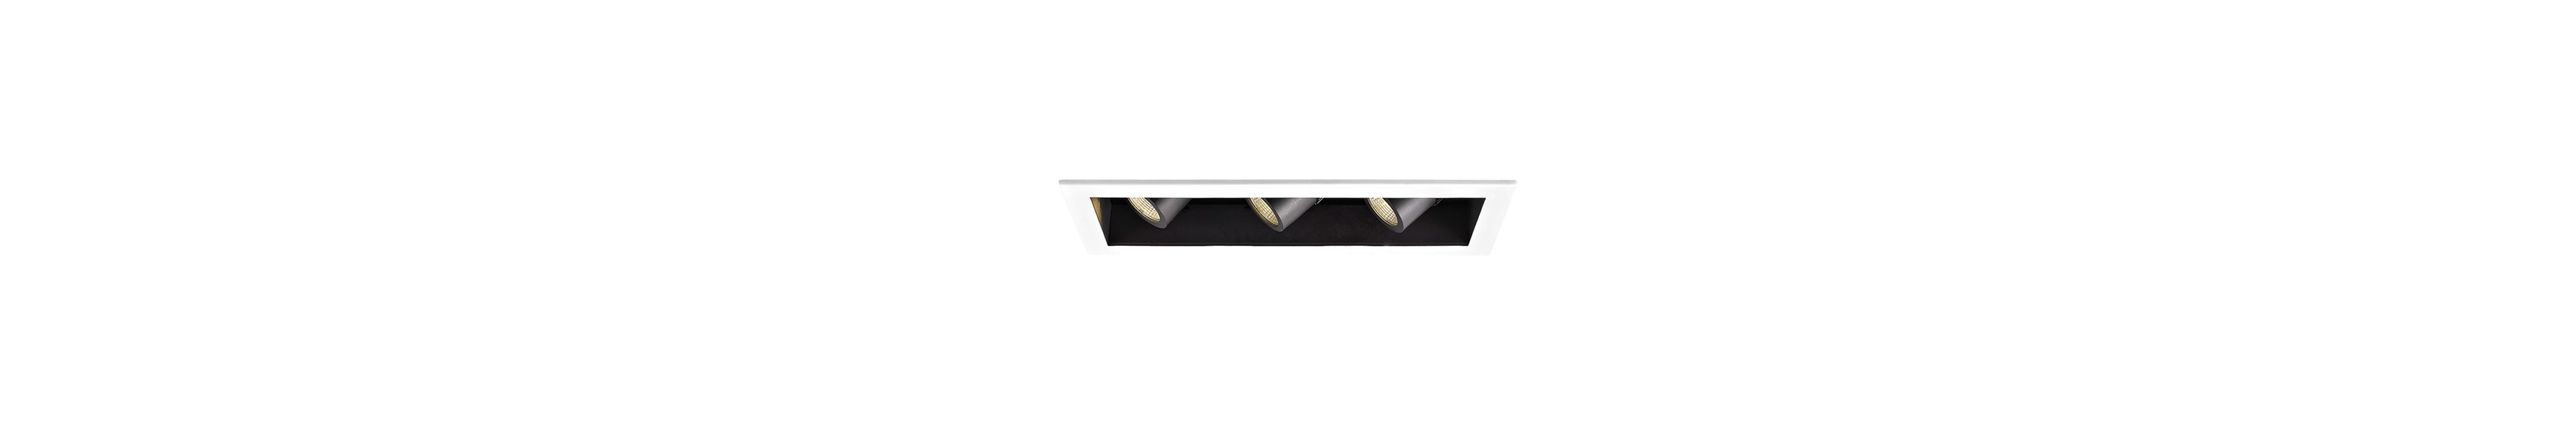 "WAC Lighting MT-4LD316N-S40 4"" Trim 4000K High Output LED Recessed"